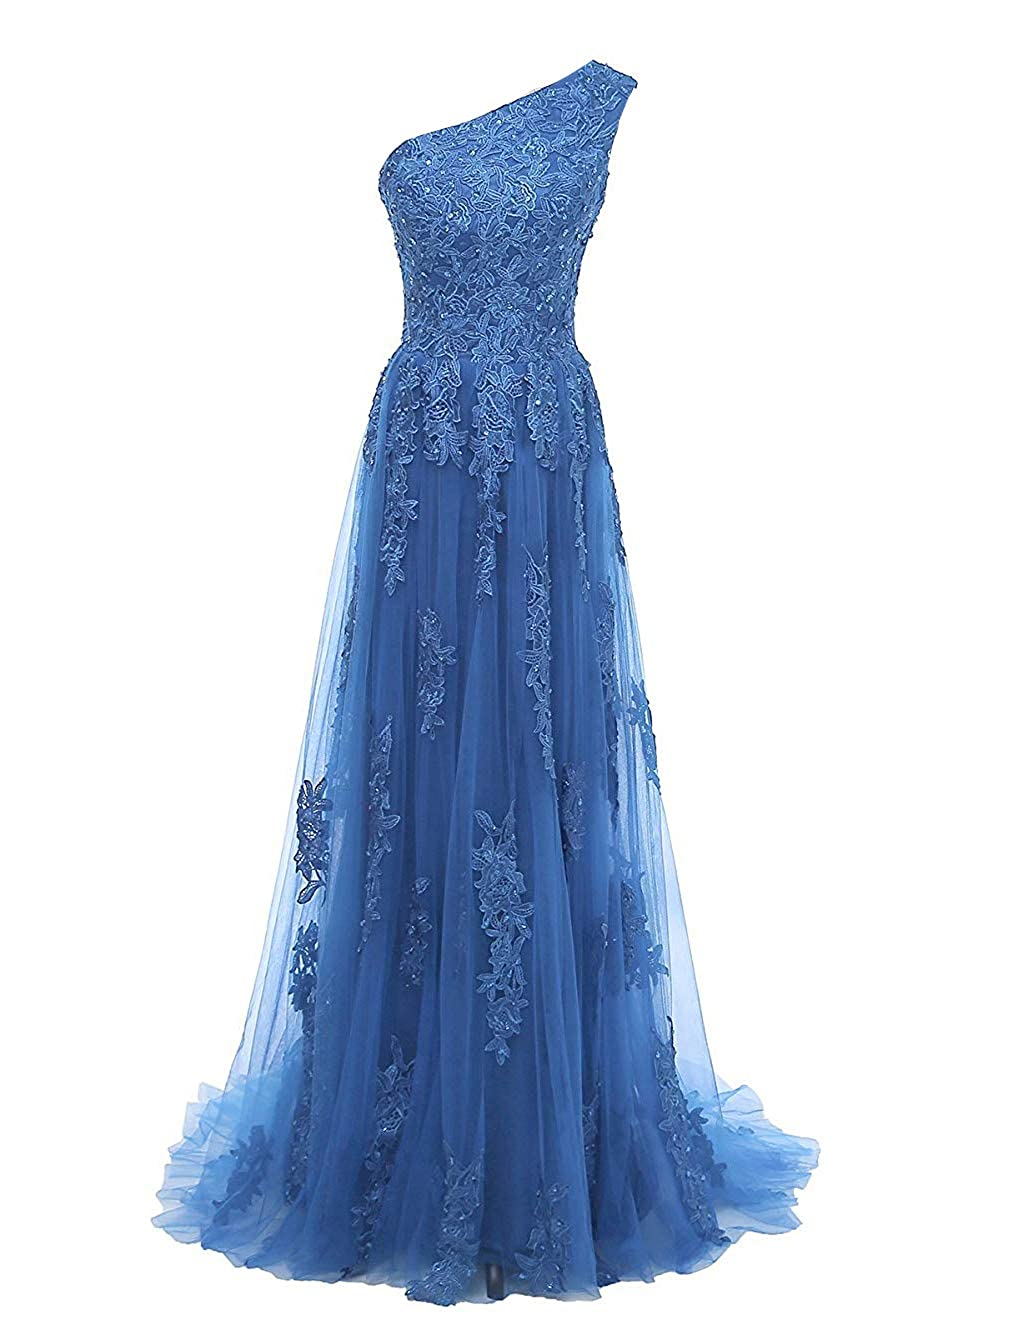 bluee Uther One Shoulder Evening Party Gowns Lace Appliques Women's Formal Long Prom Dresses